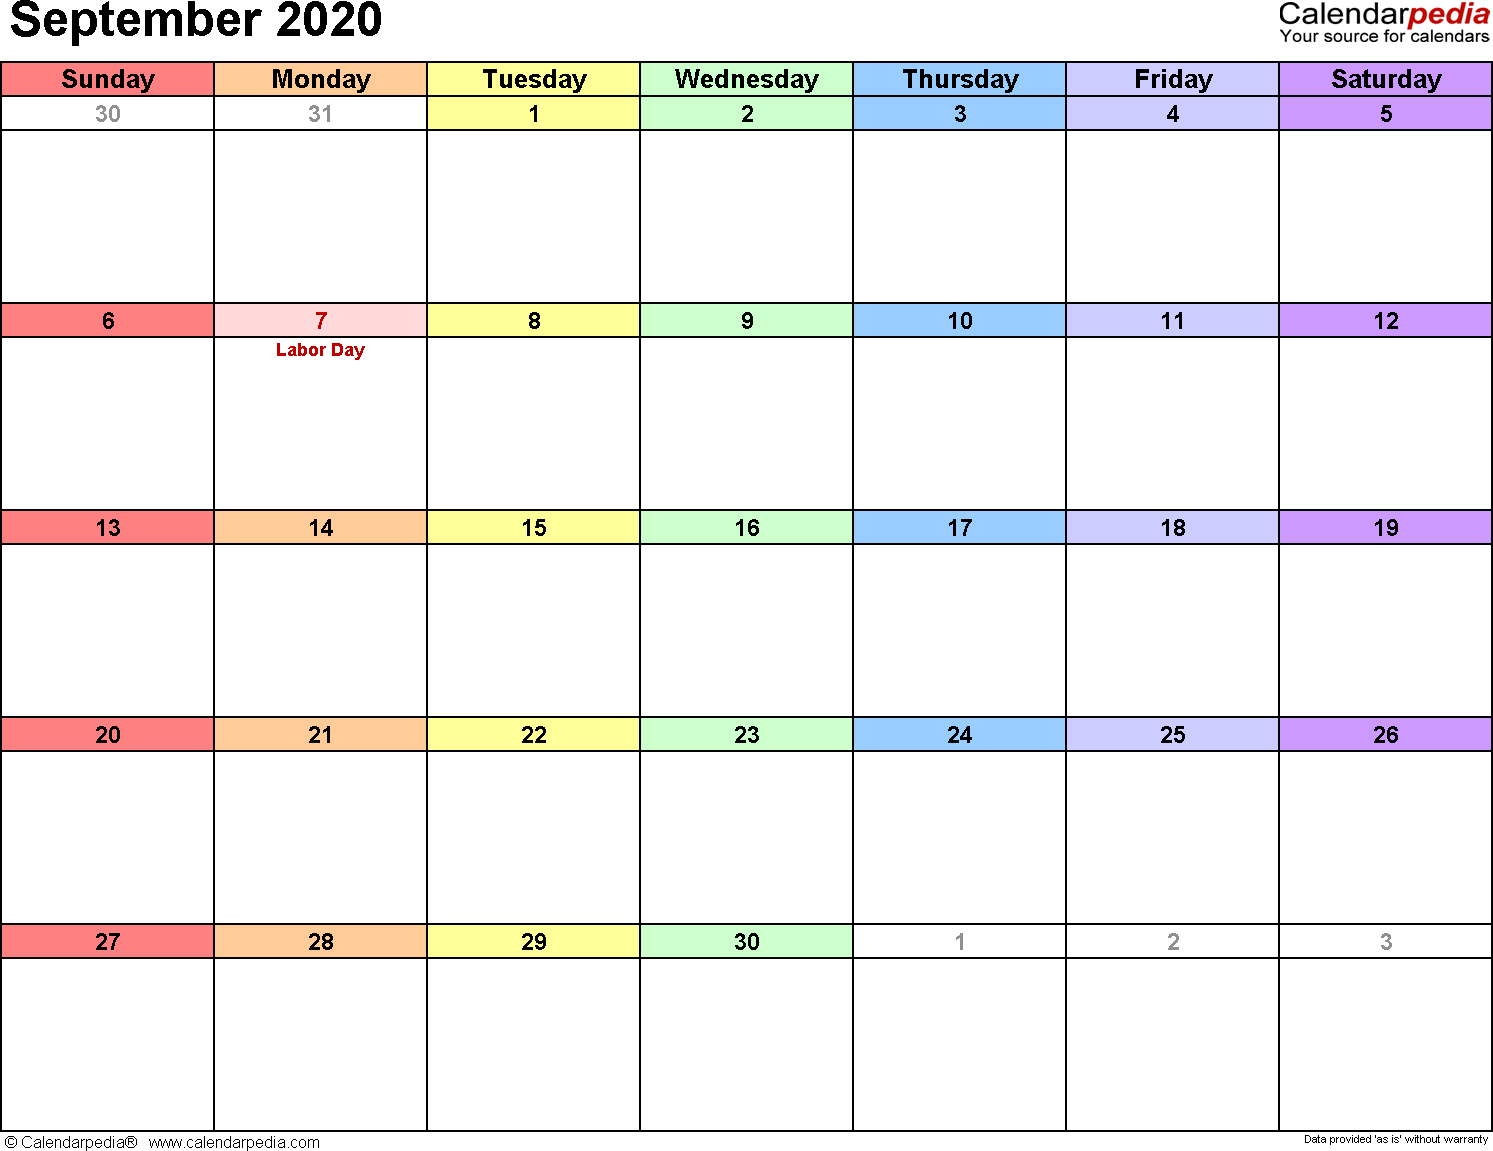 September 2020 Calendars For Word, Excel & Pdf within Blank Calendar Print-Outs Fill In Sept